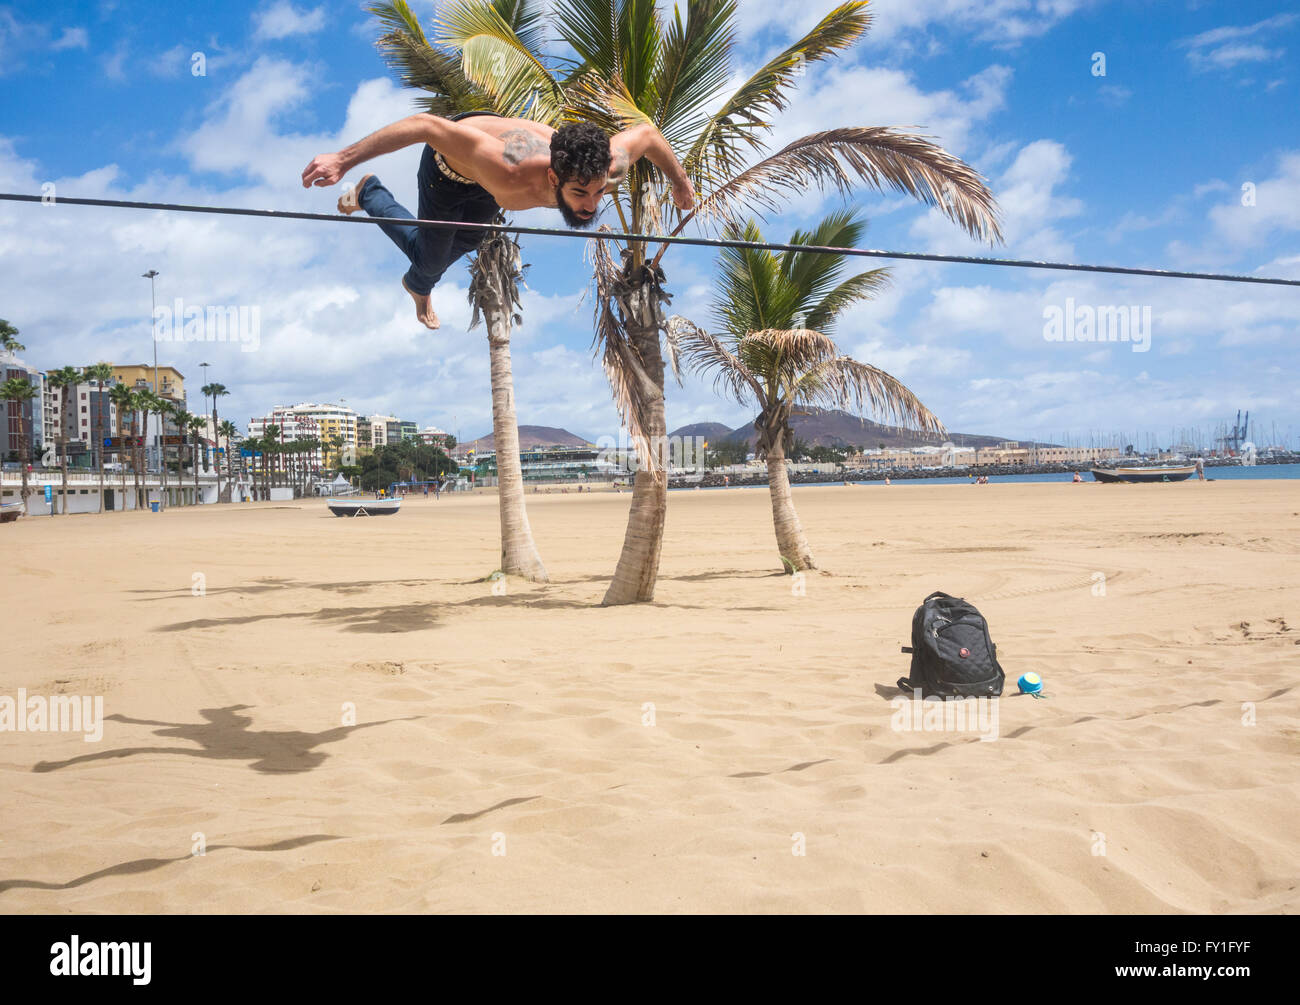 Man performing somersaults and gymnastic dismounts on slackline tied between plam trees on beach in Spain - Stock Image